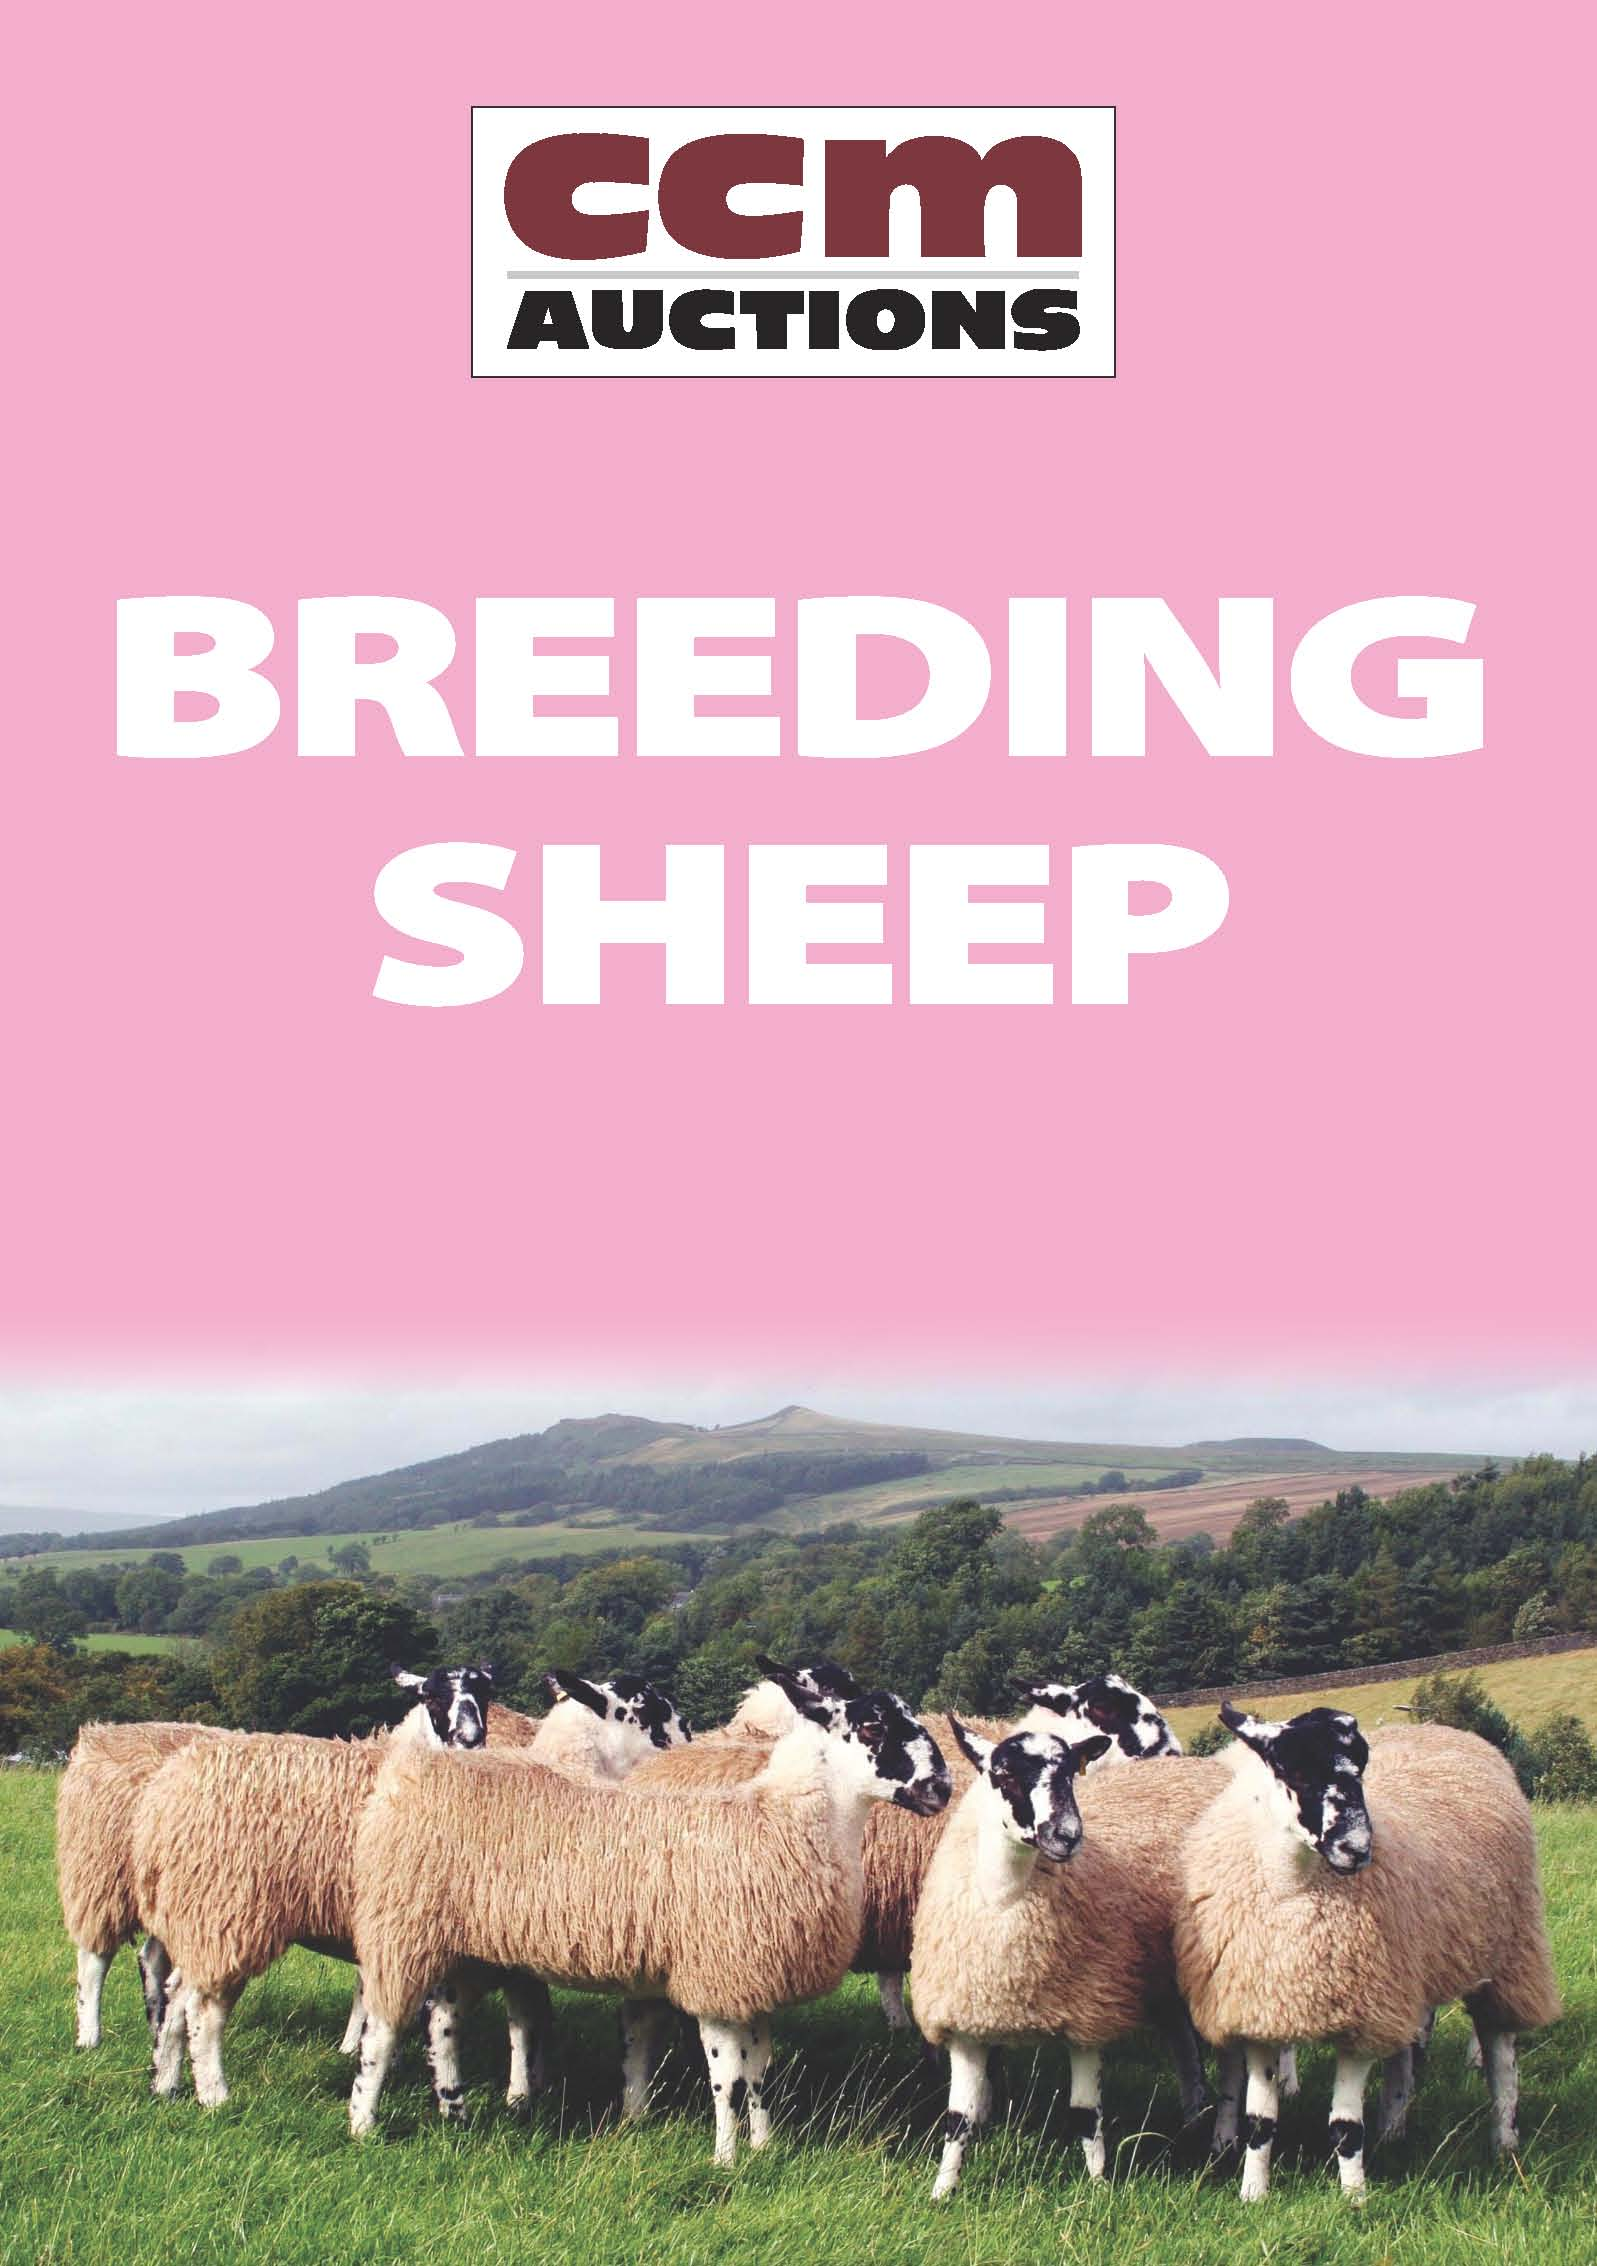 BREEDING SHEEP - TUESDAY 27TH OCTOBER 2015